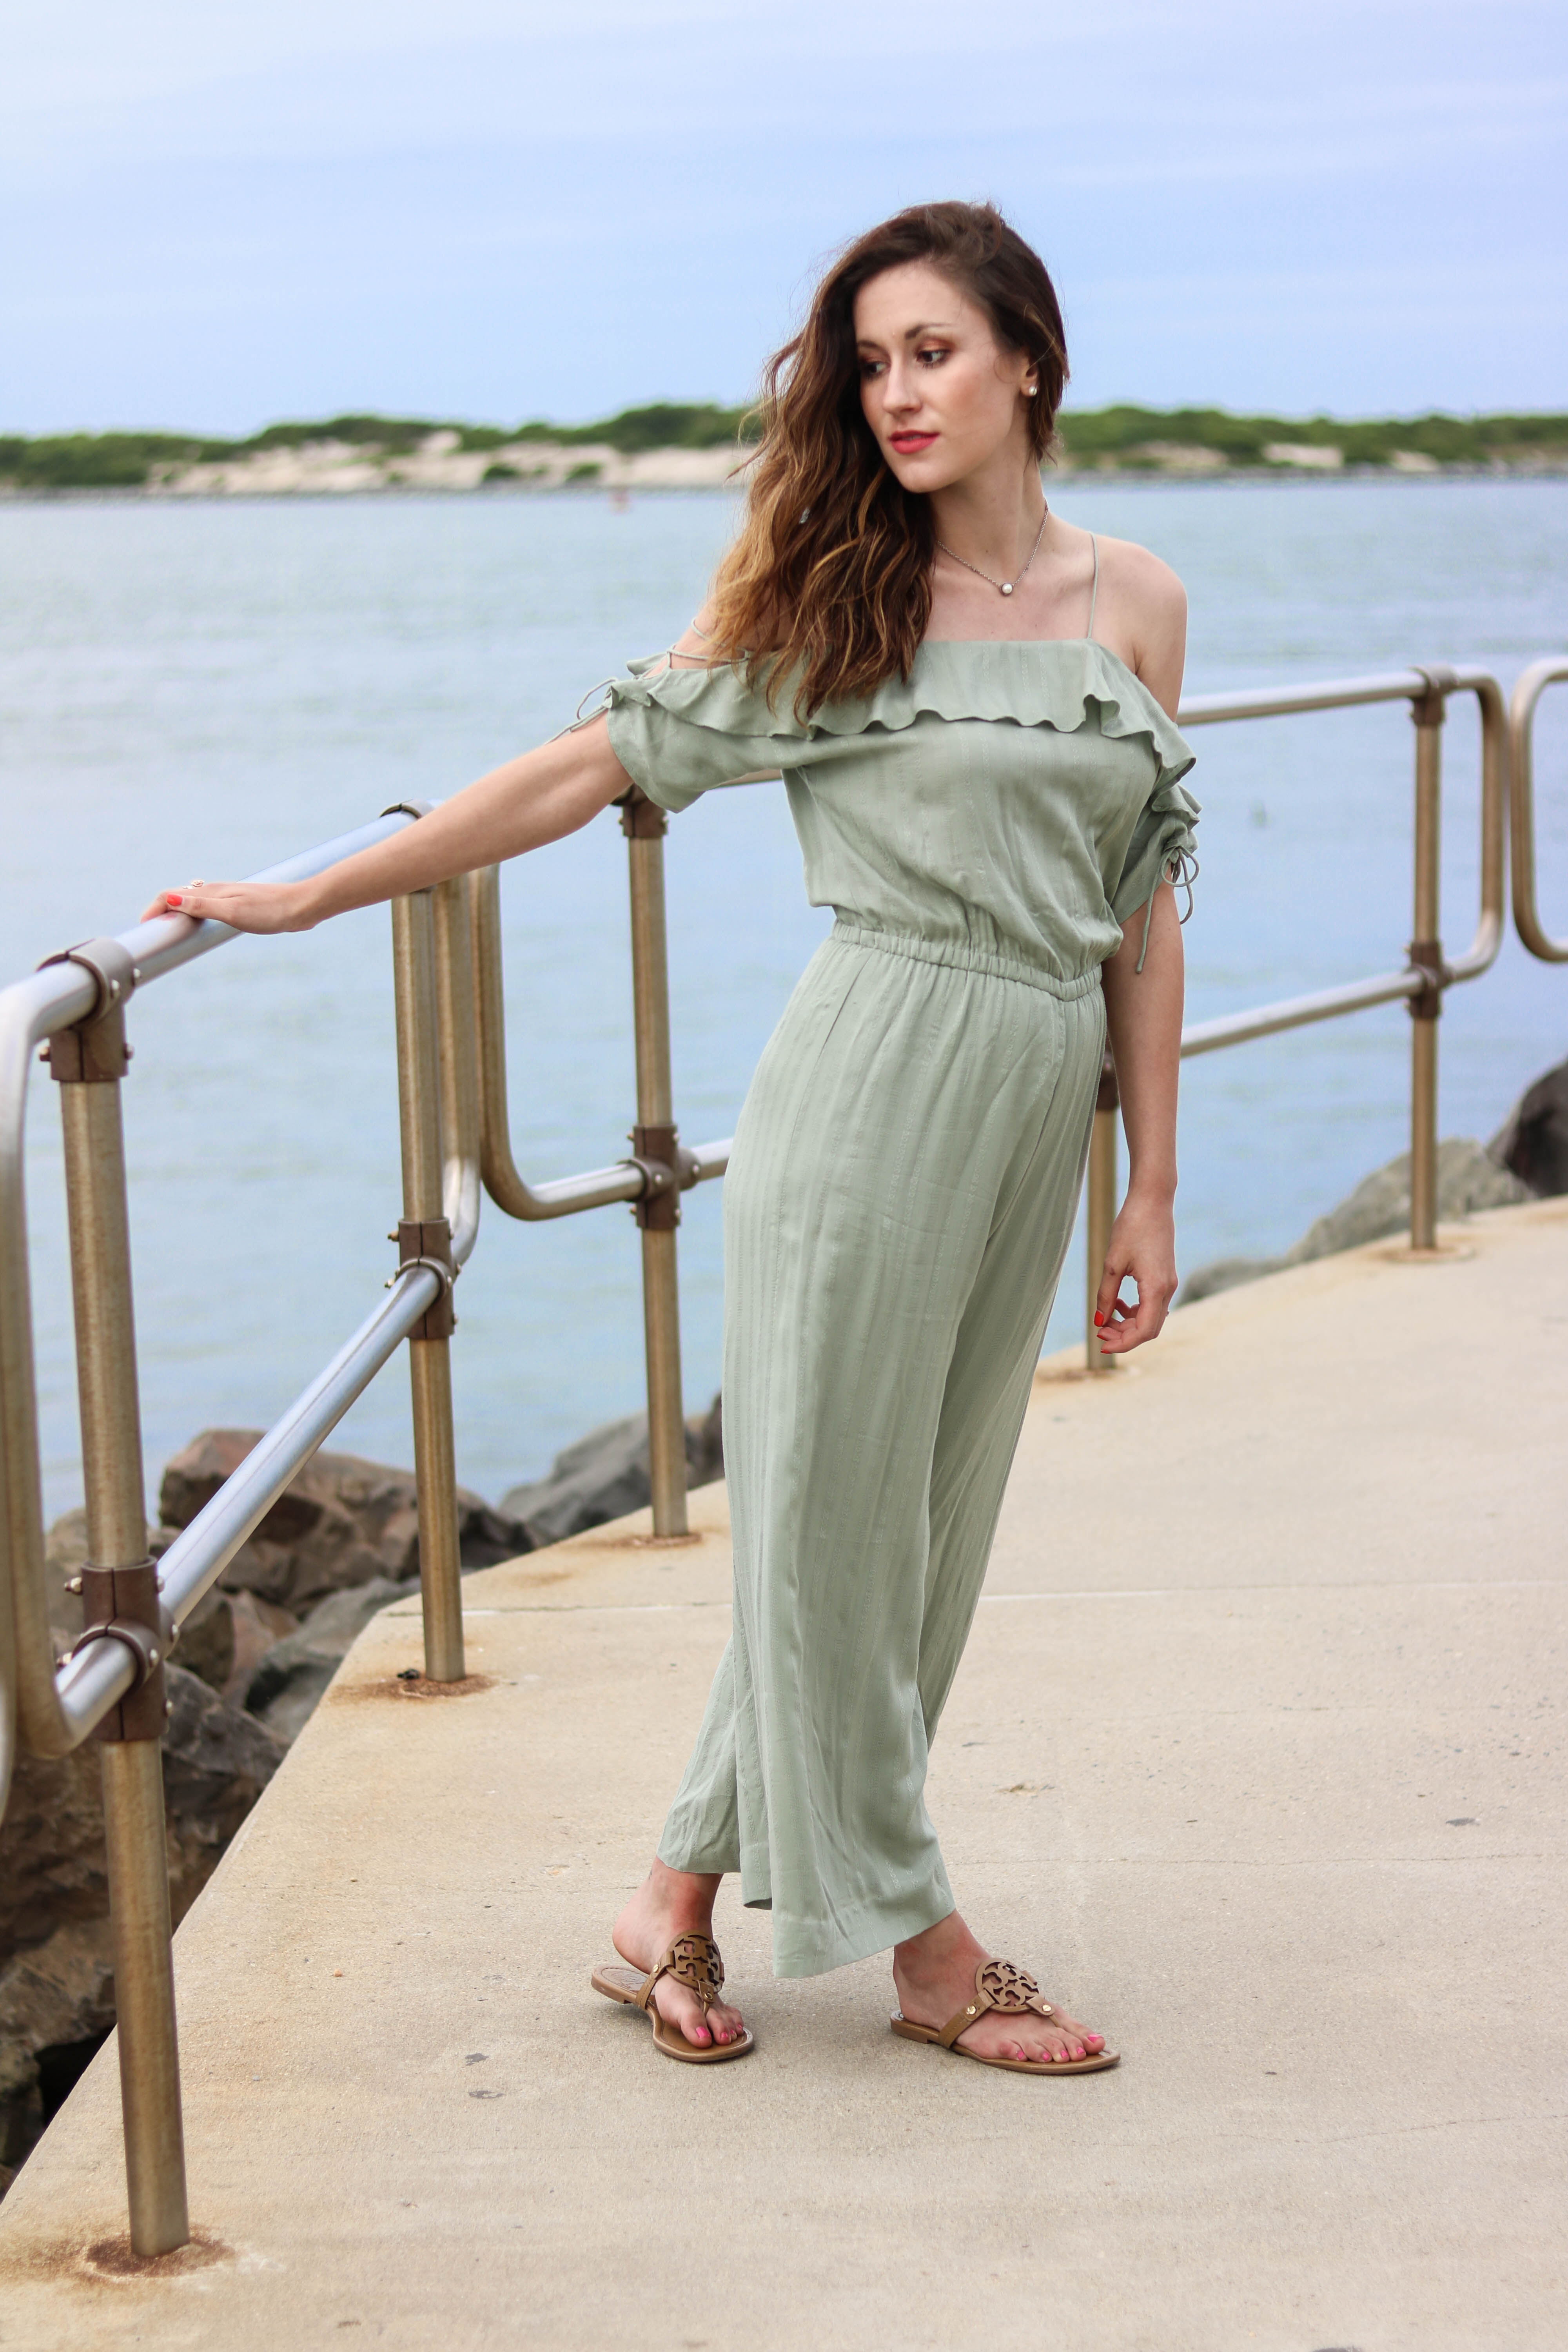 CURRENTLY...(+ Q3 PLAYLIST) - A ruffle jumpsuit + what's happening CURRENTLY, on Coming Up Roses